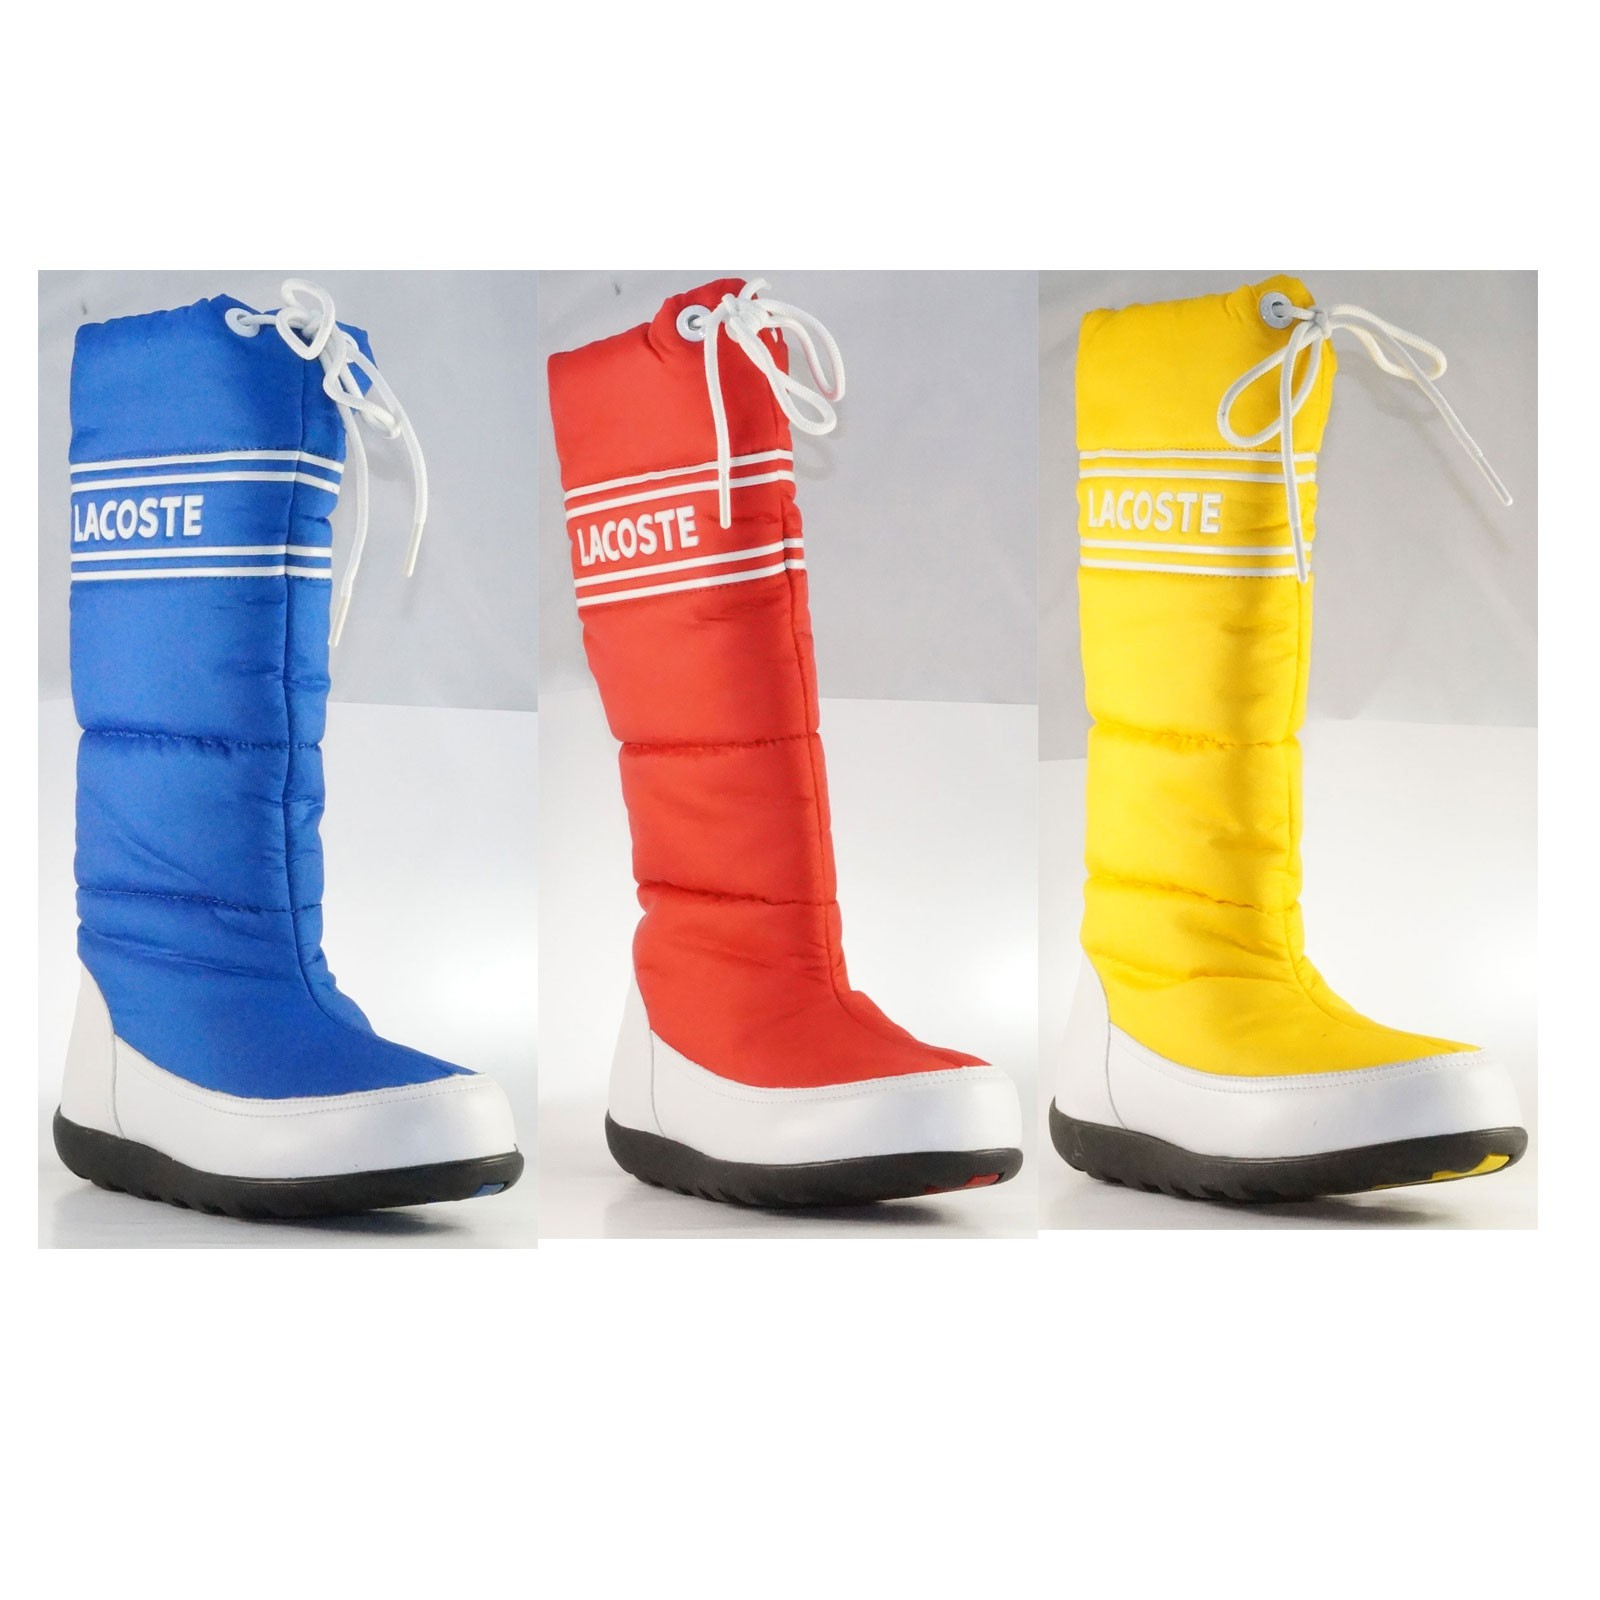 newest 9c818 3f2a4 Details about Lacoste Snug Women Winterboots Boots Snow Winter Sneaker  11CAW1441 95T 156 84T